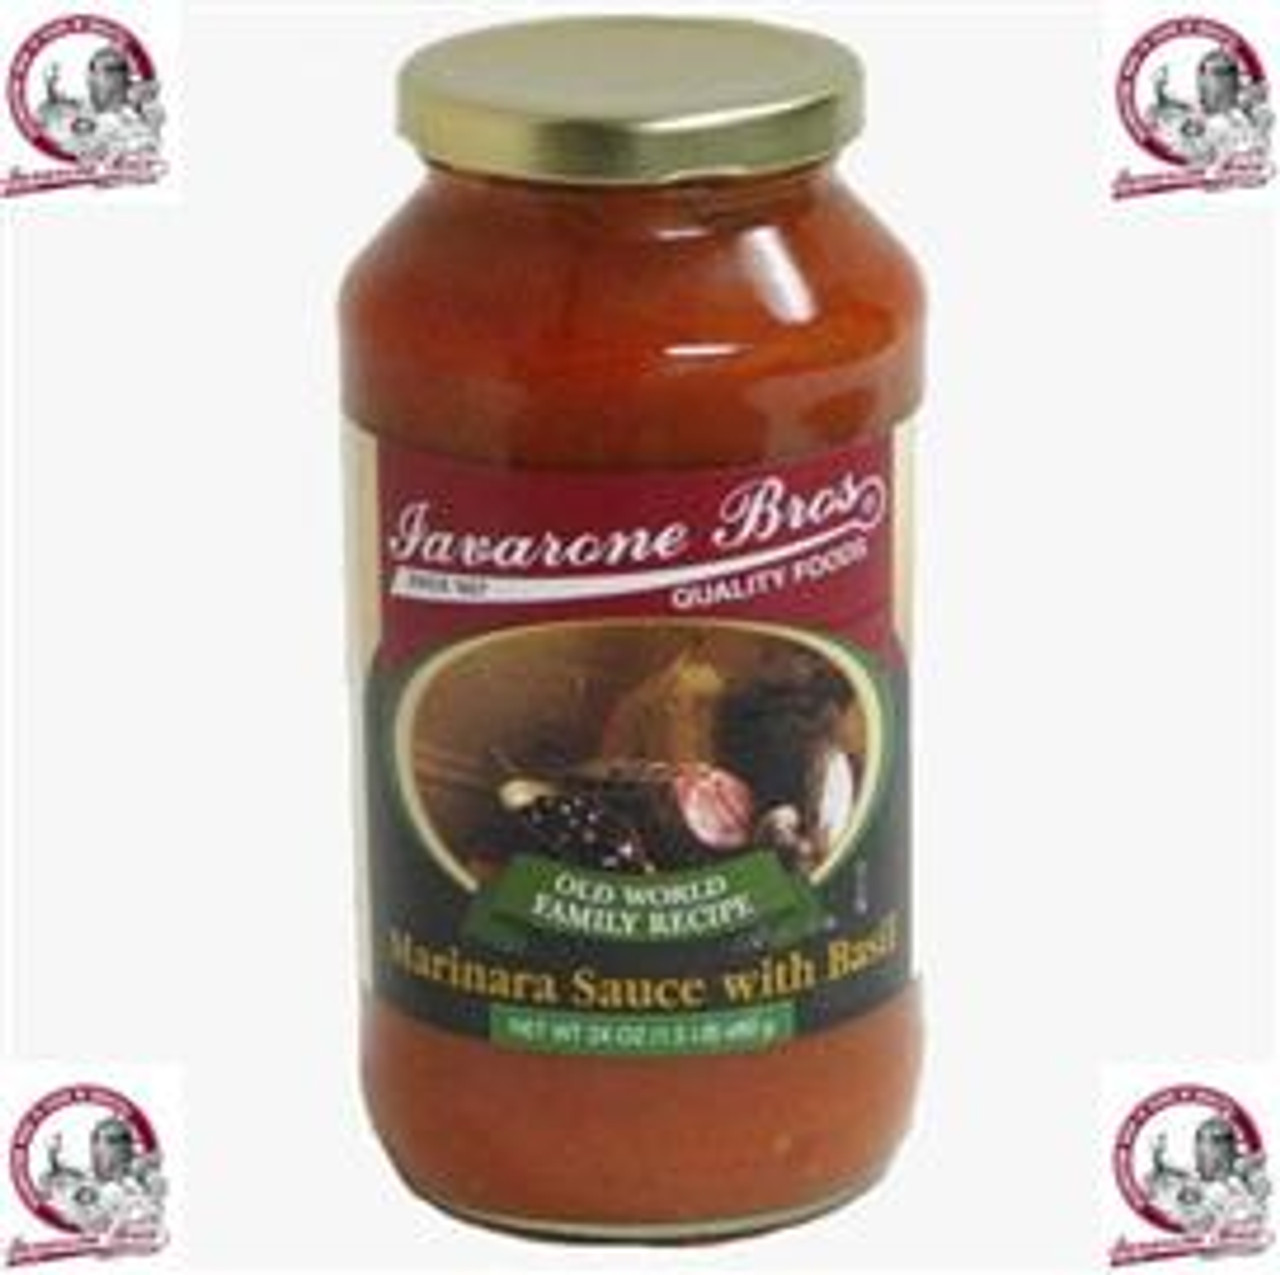 Marinara Sauce with Basil- Old World Family Recipe